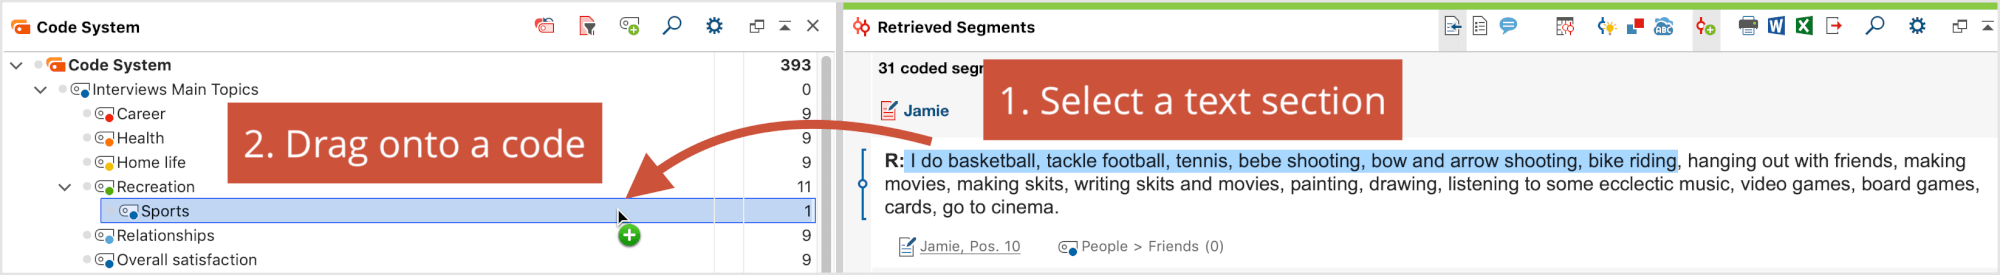 Coding text passages direcly in the Retrieved Segments window